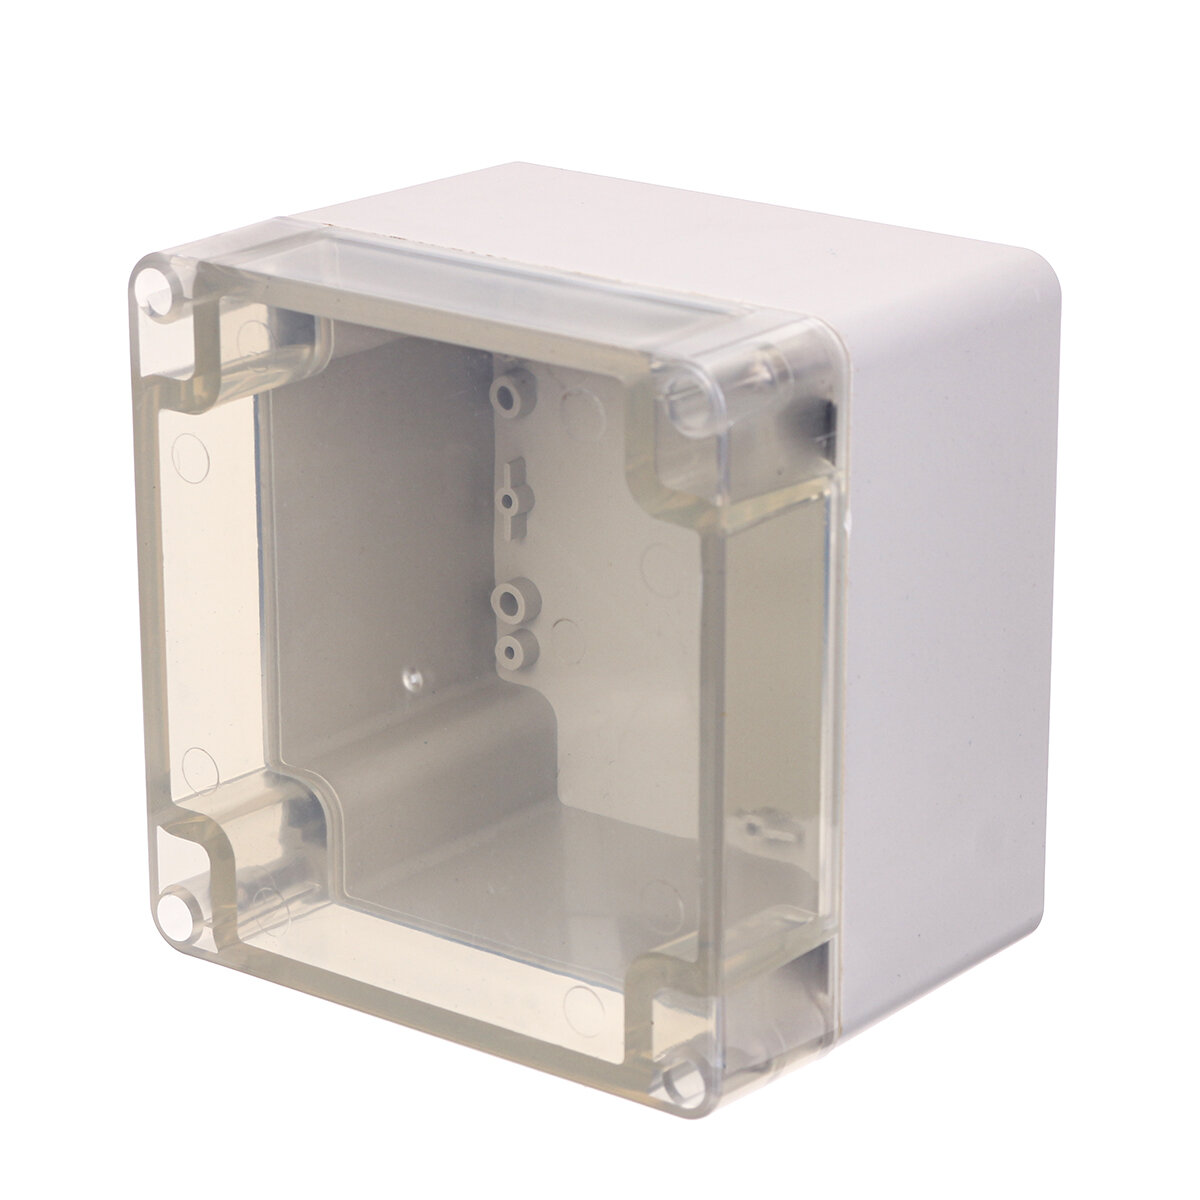 Plastic Waterproof Electronic Project Box Clear Enclosure Cover Electronic Project Case 120*120*90mm